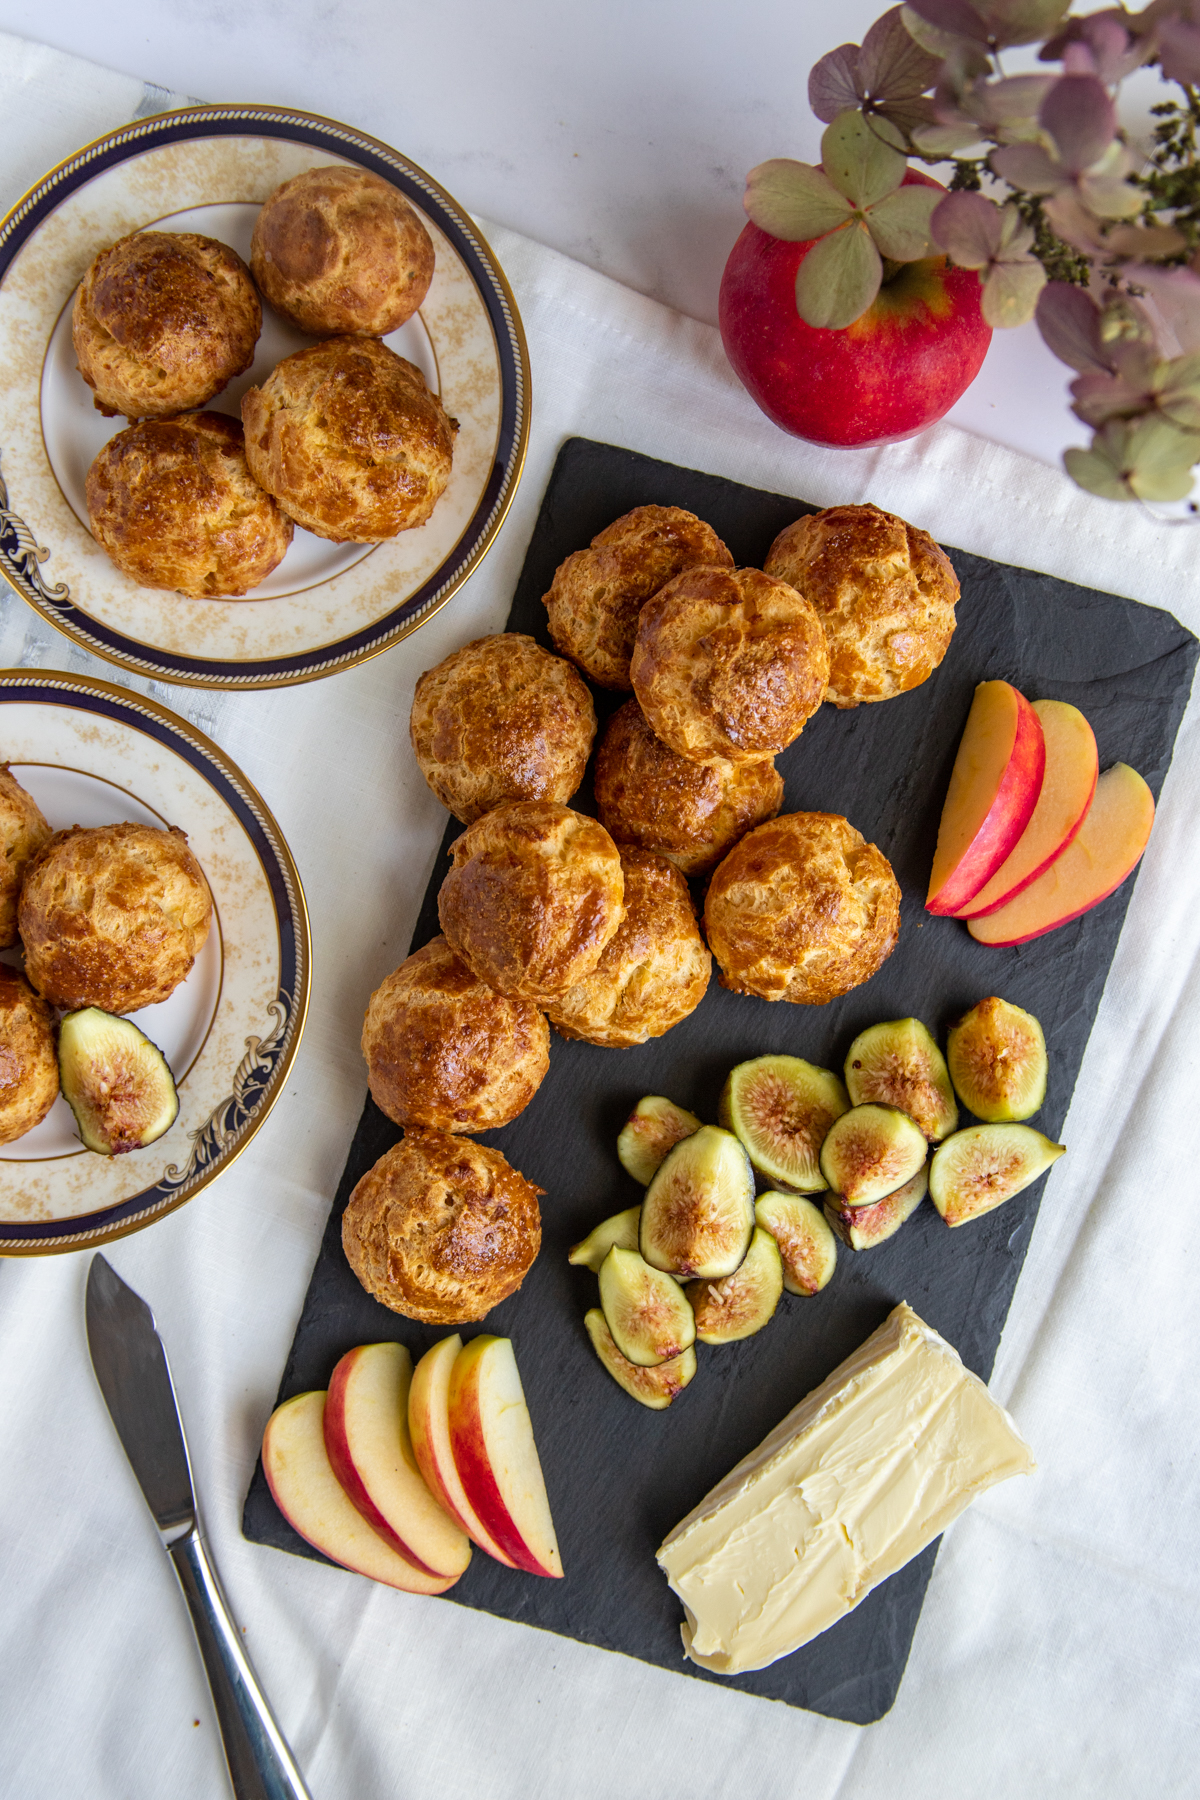 Gougeres on a cheese board with apples, figs and brie